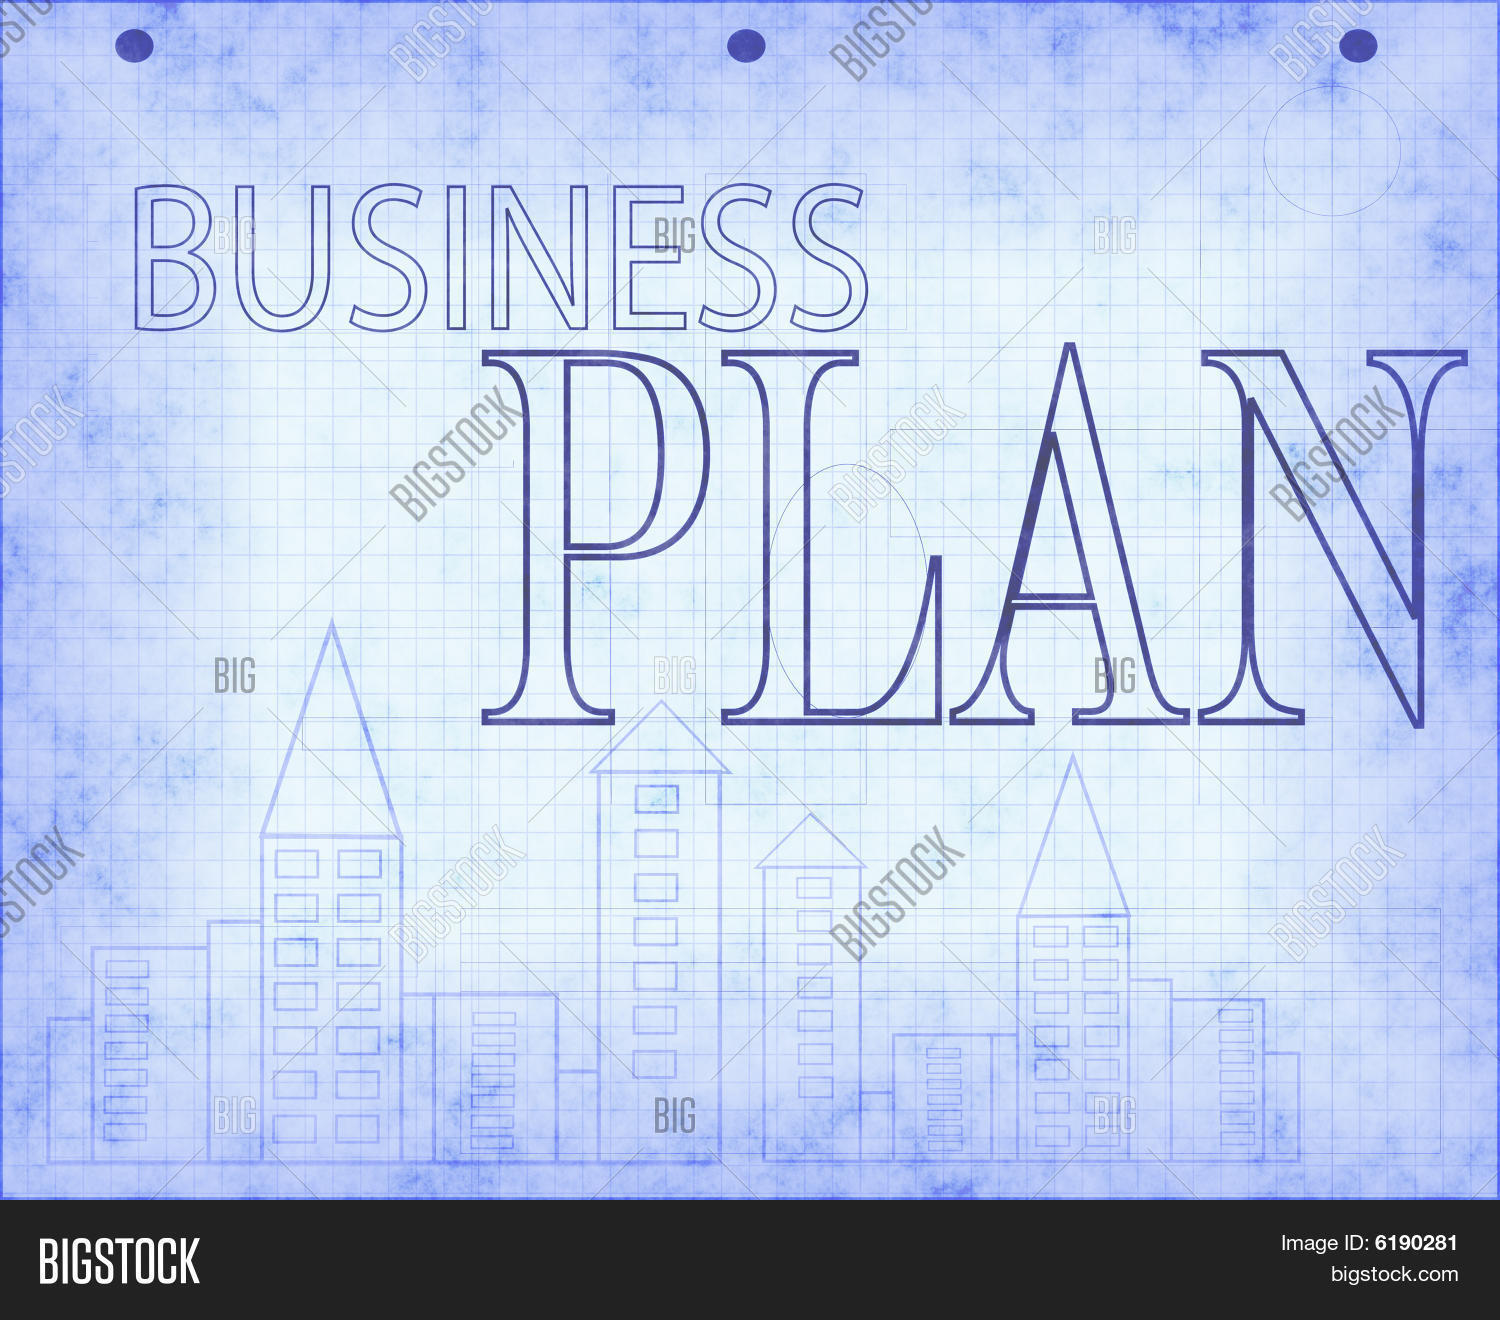 Blueprint business plan design image photo bigstock blueprint of business plan design malvernweather